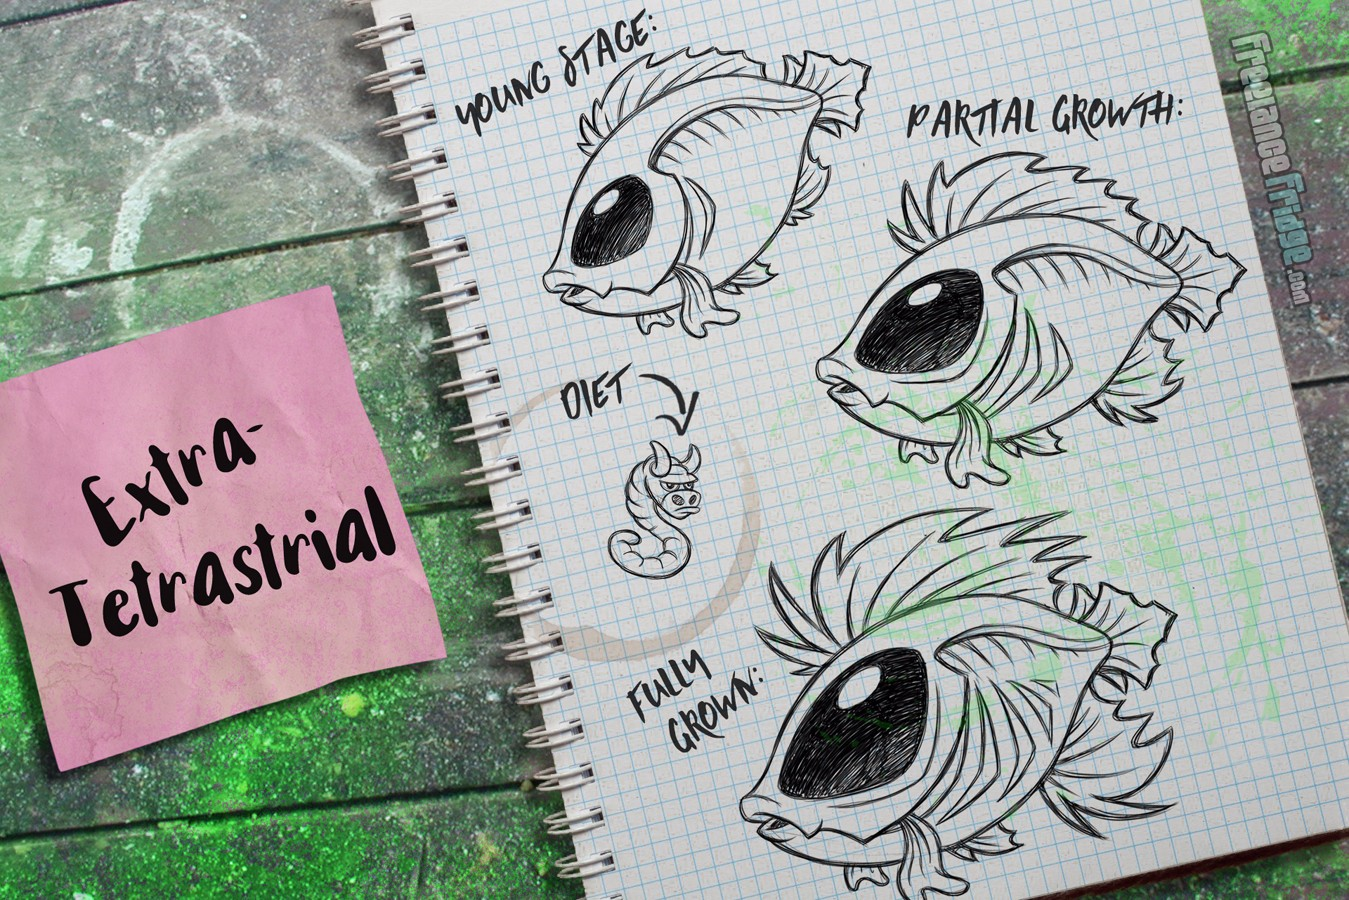 Fish Creature Concept Artwork Sketches Extraterrestrial Alien Big Eyes